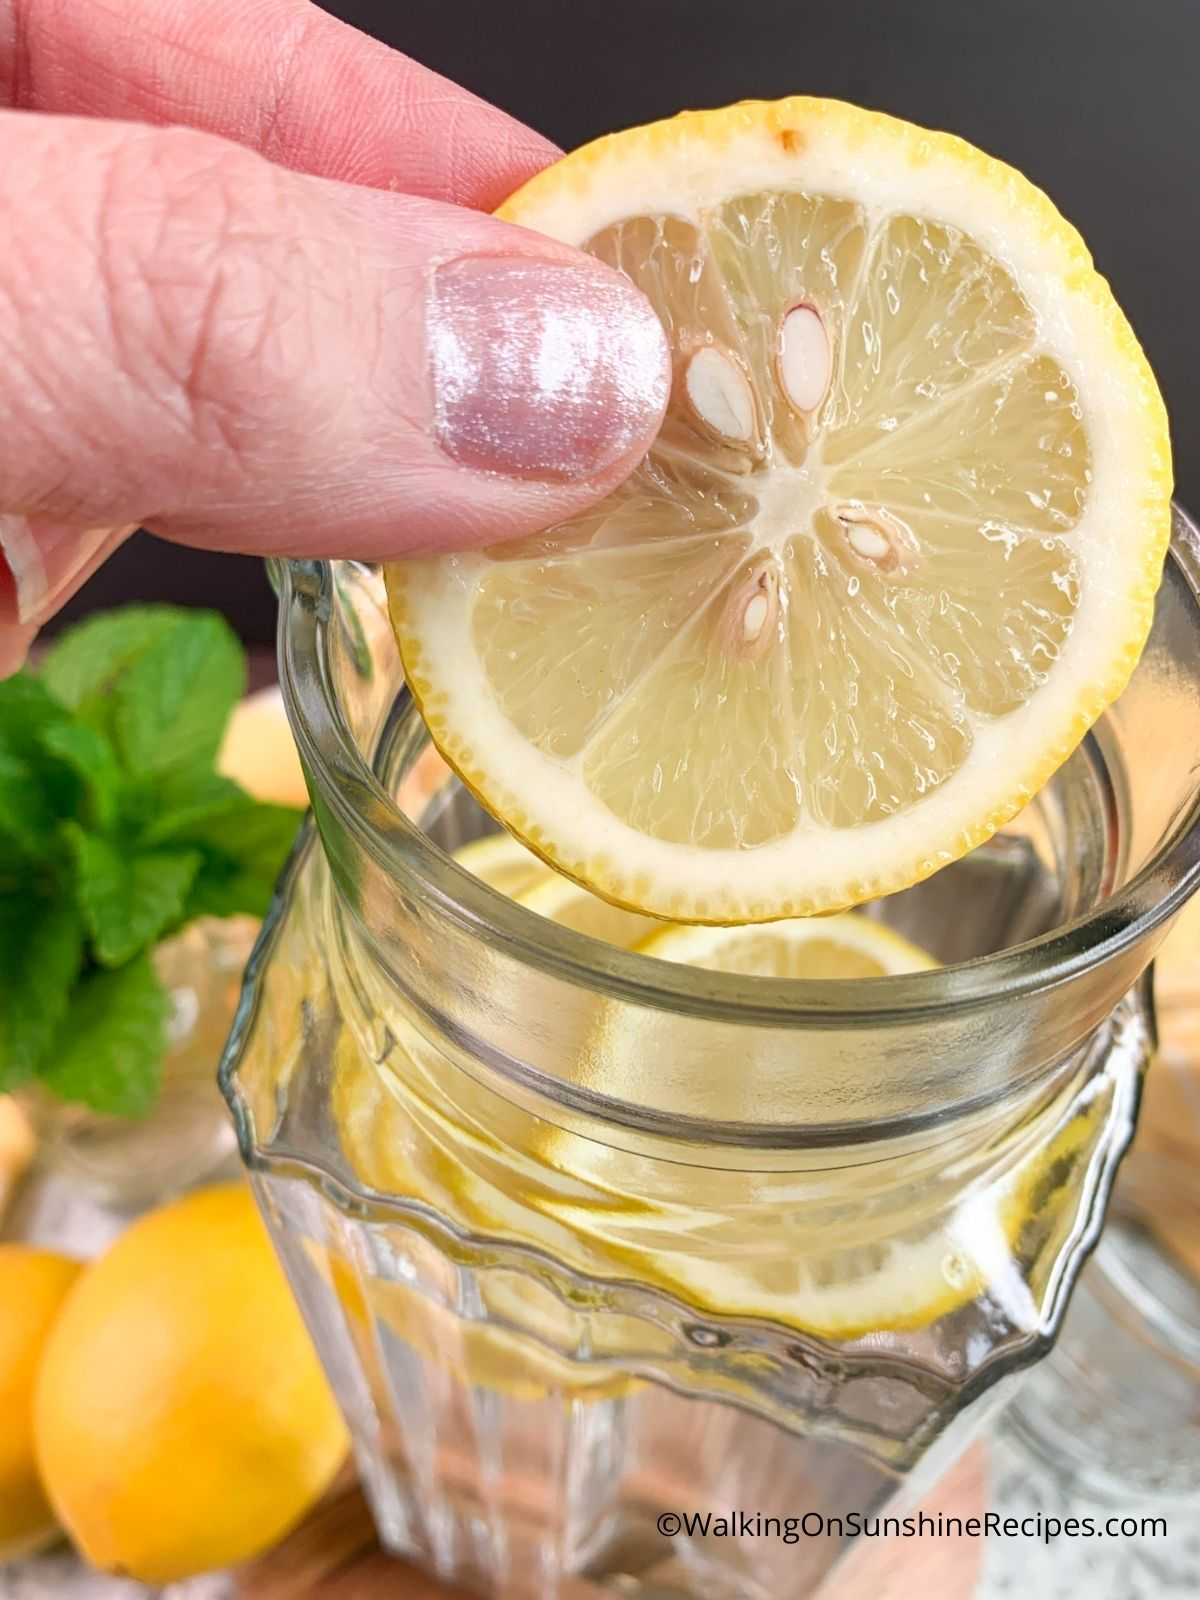 Add lemon slices to pitcher of water.